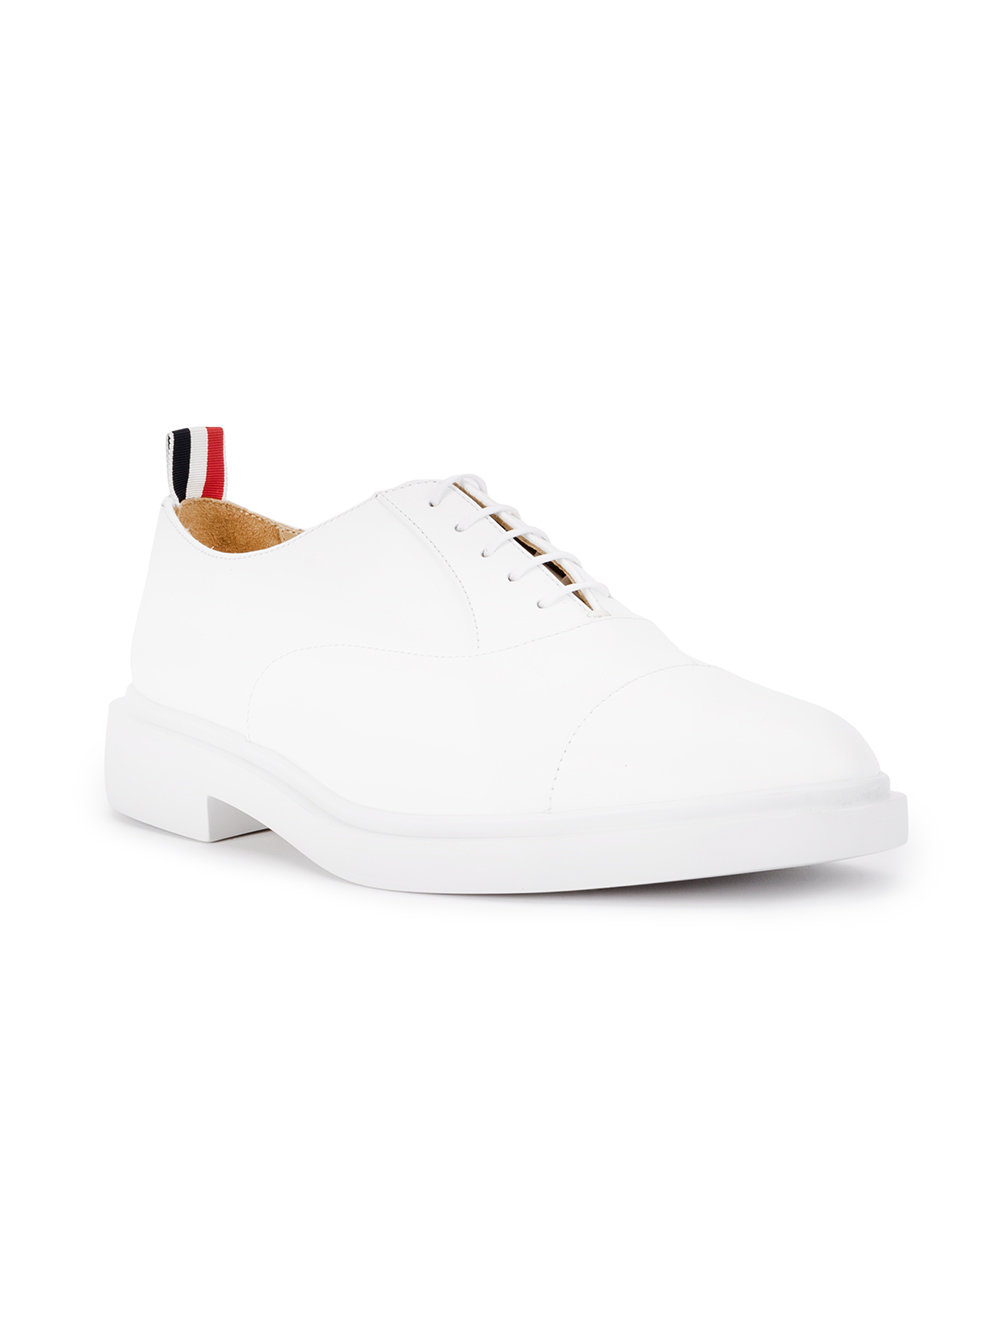 Thom Browne   Lace Up Oxford